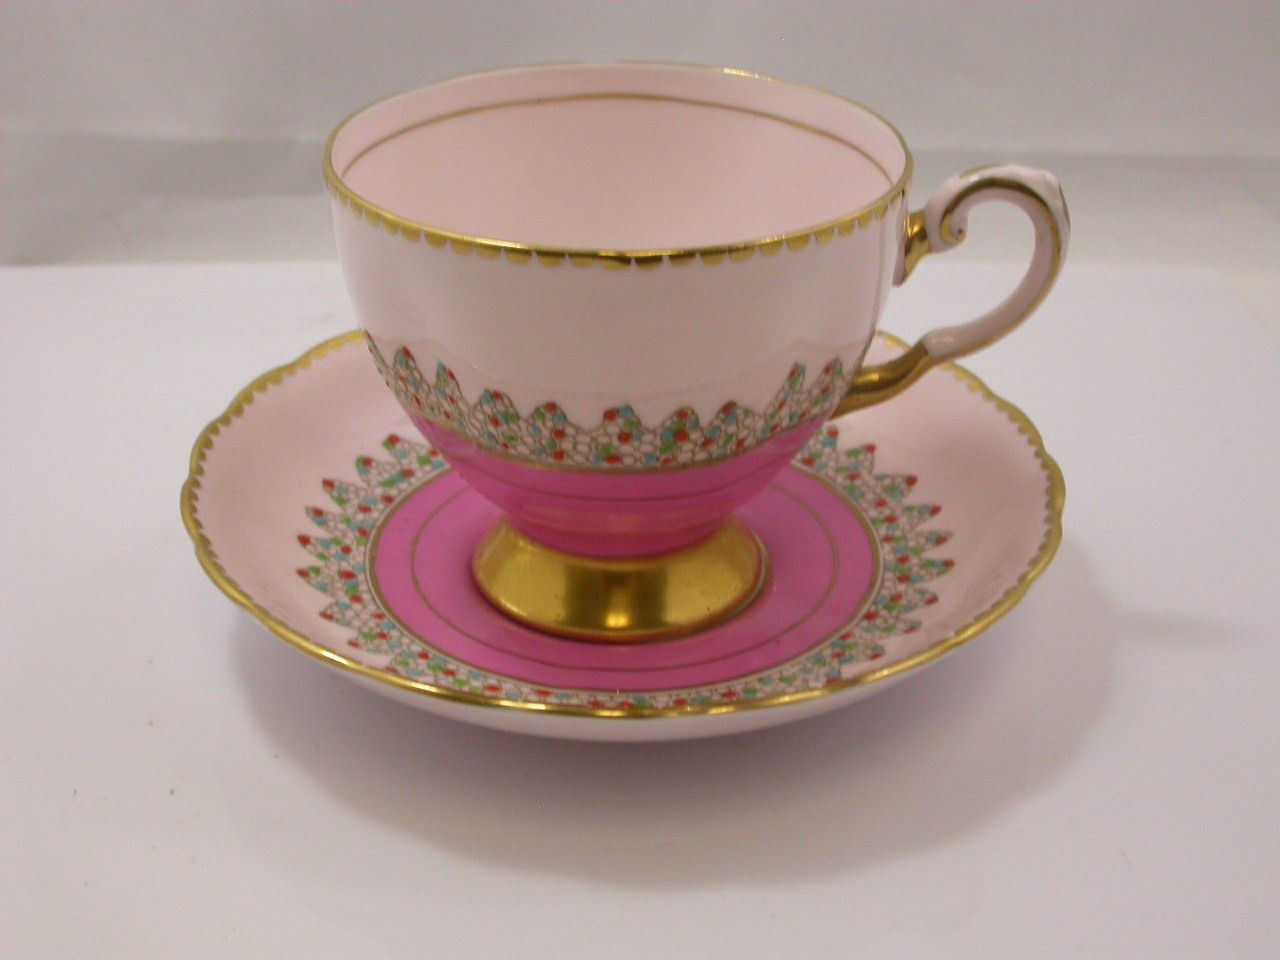 Tuscan Bone China Cup Saucer Pink Gold Dots 8794h Pink Tea Cups Tea Cup Collection Tea Cups Vintage